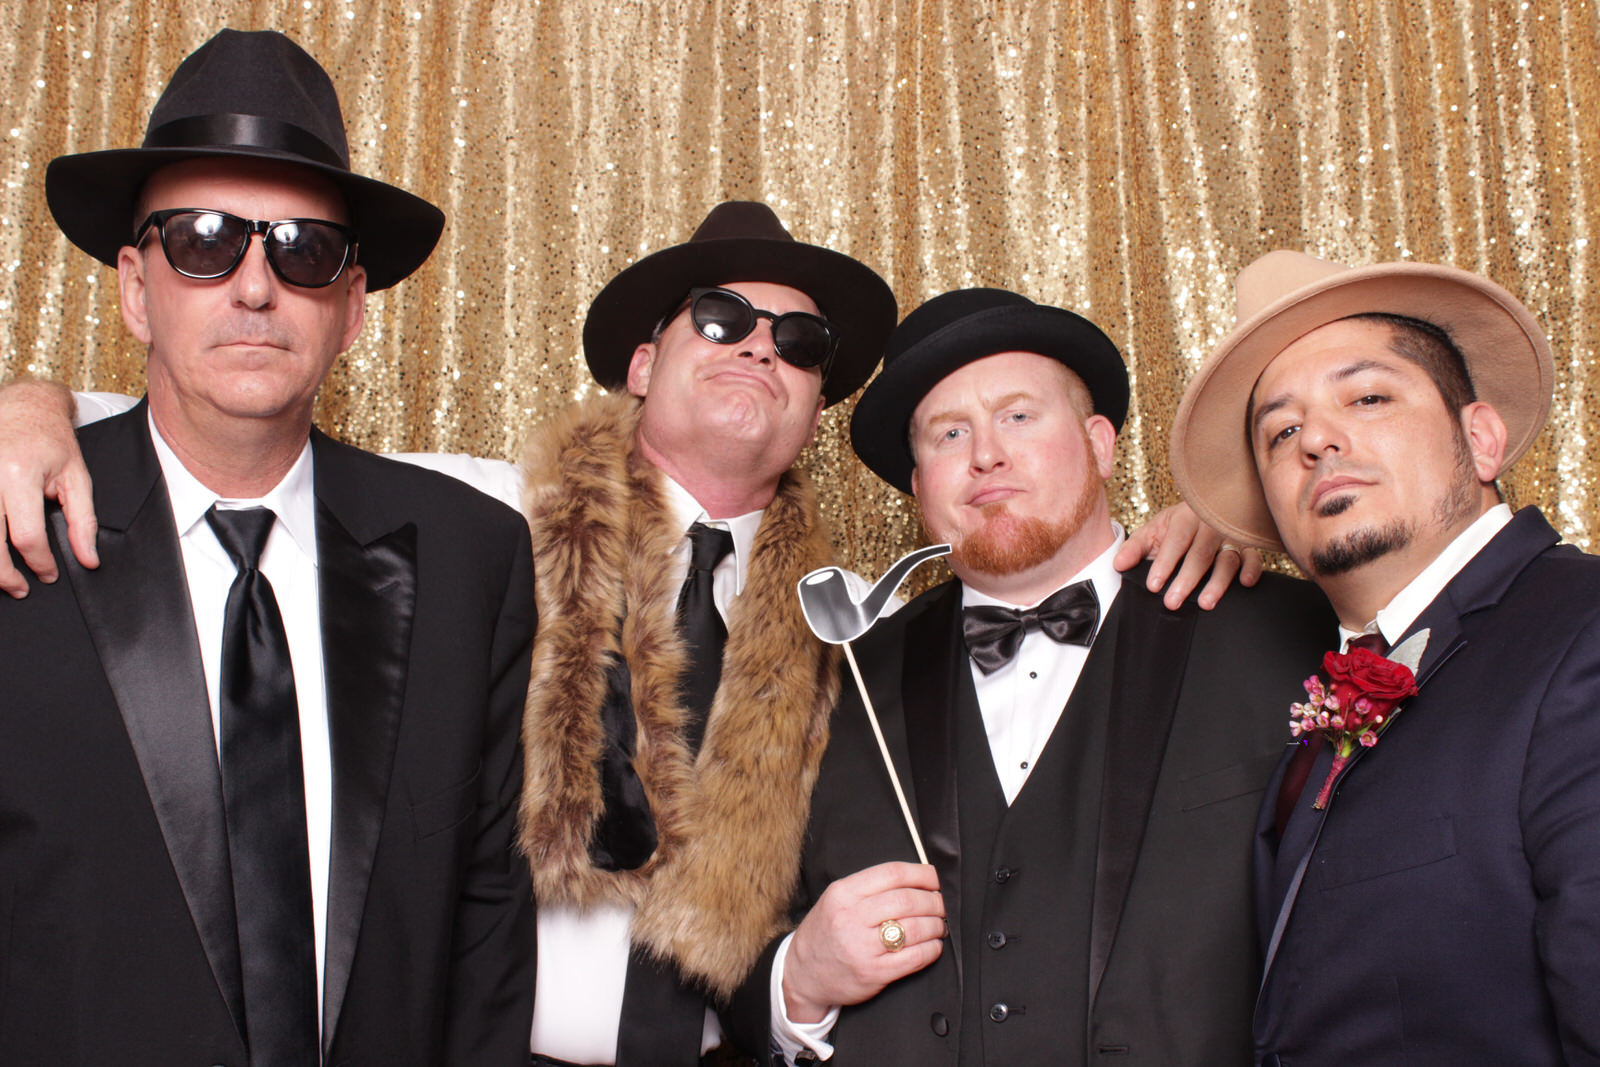 Great Gatsby Photo Booth - South Texas and RGV Photo Booth